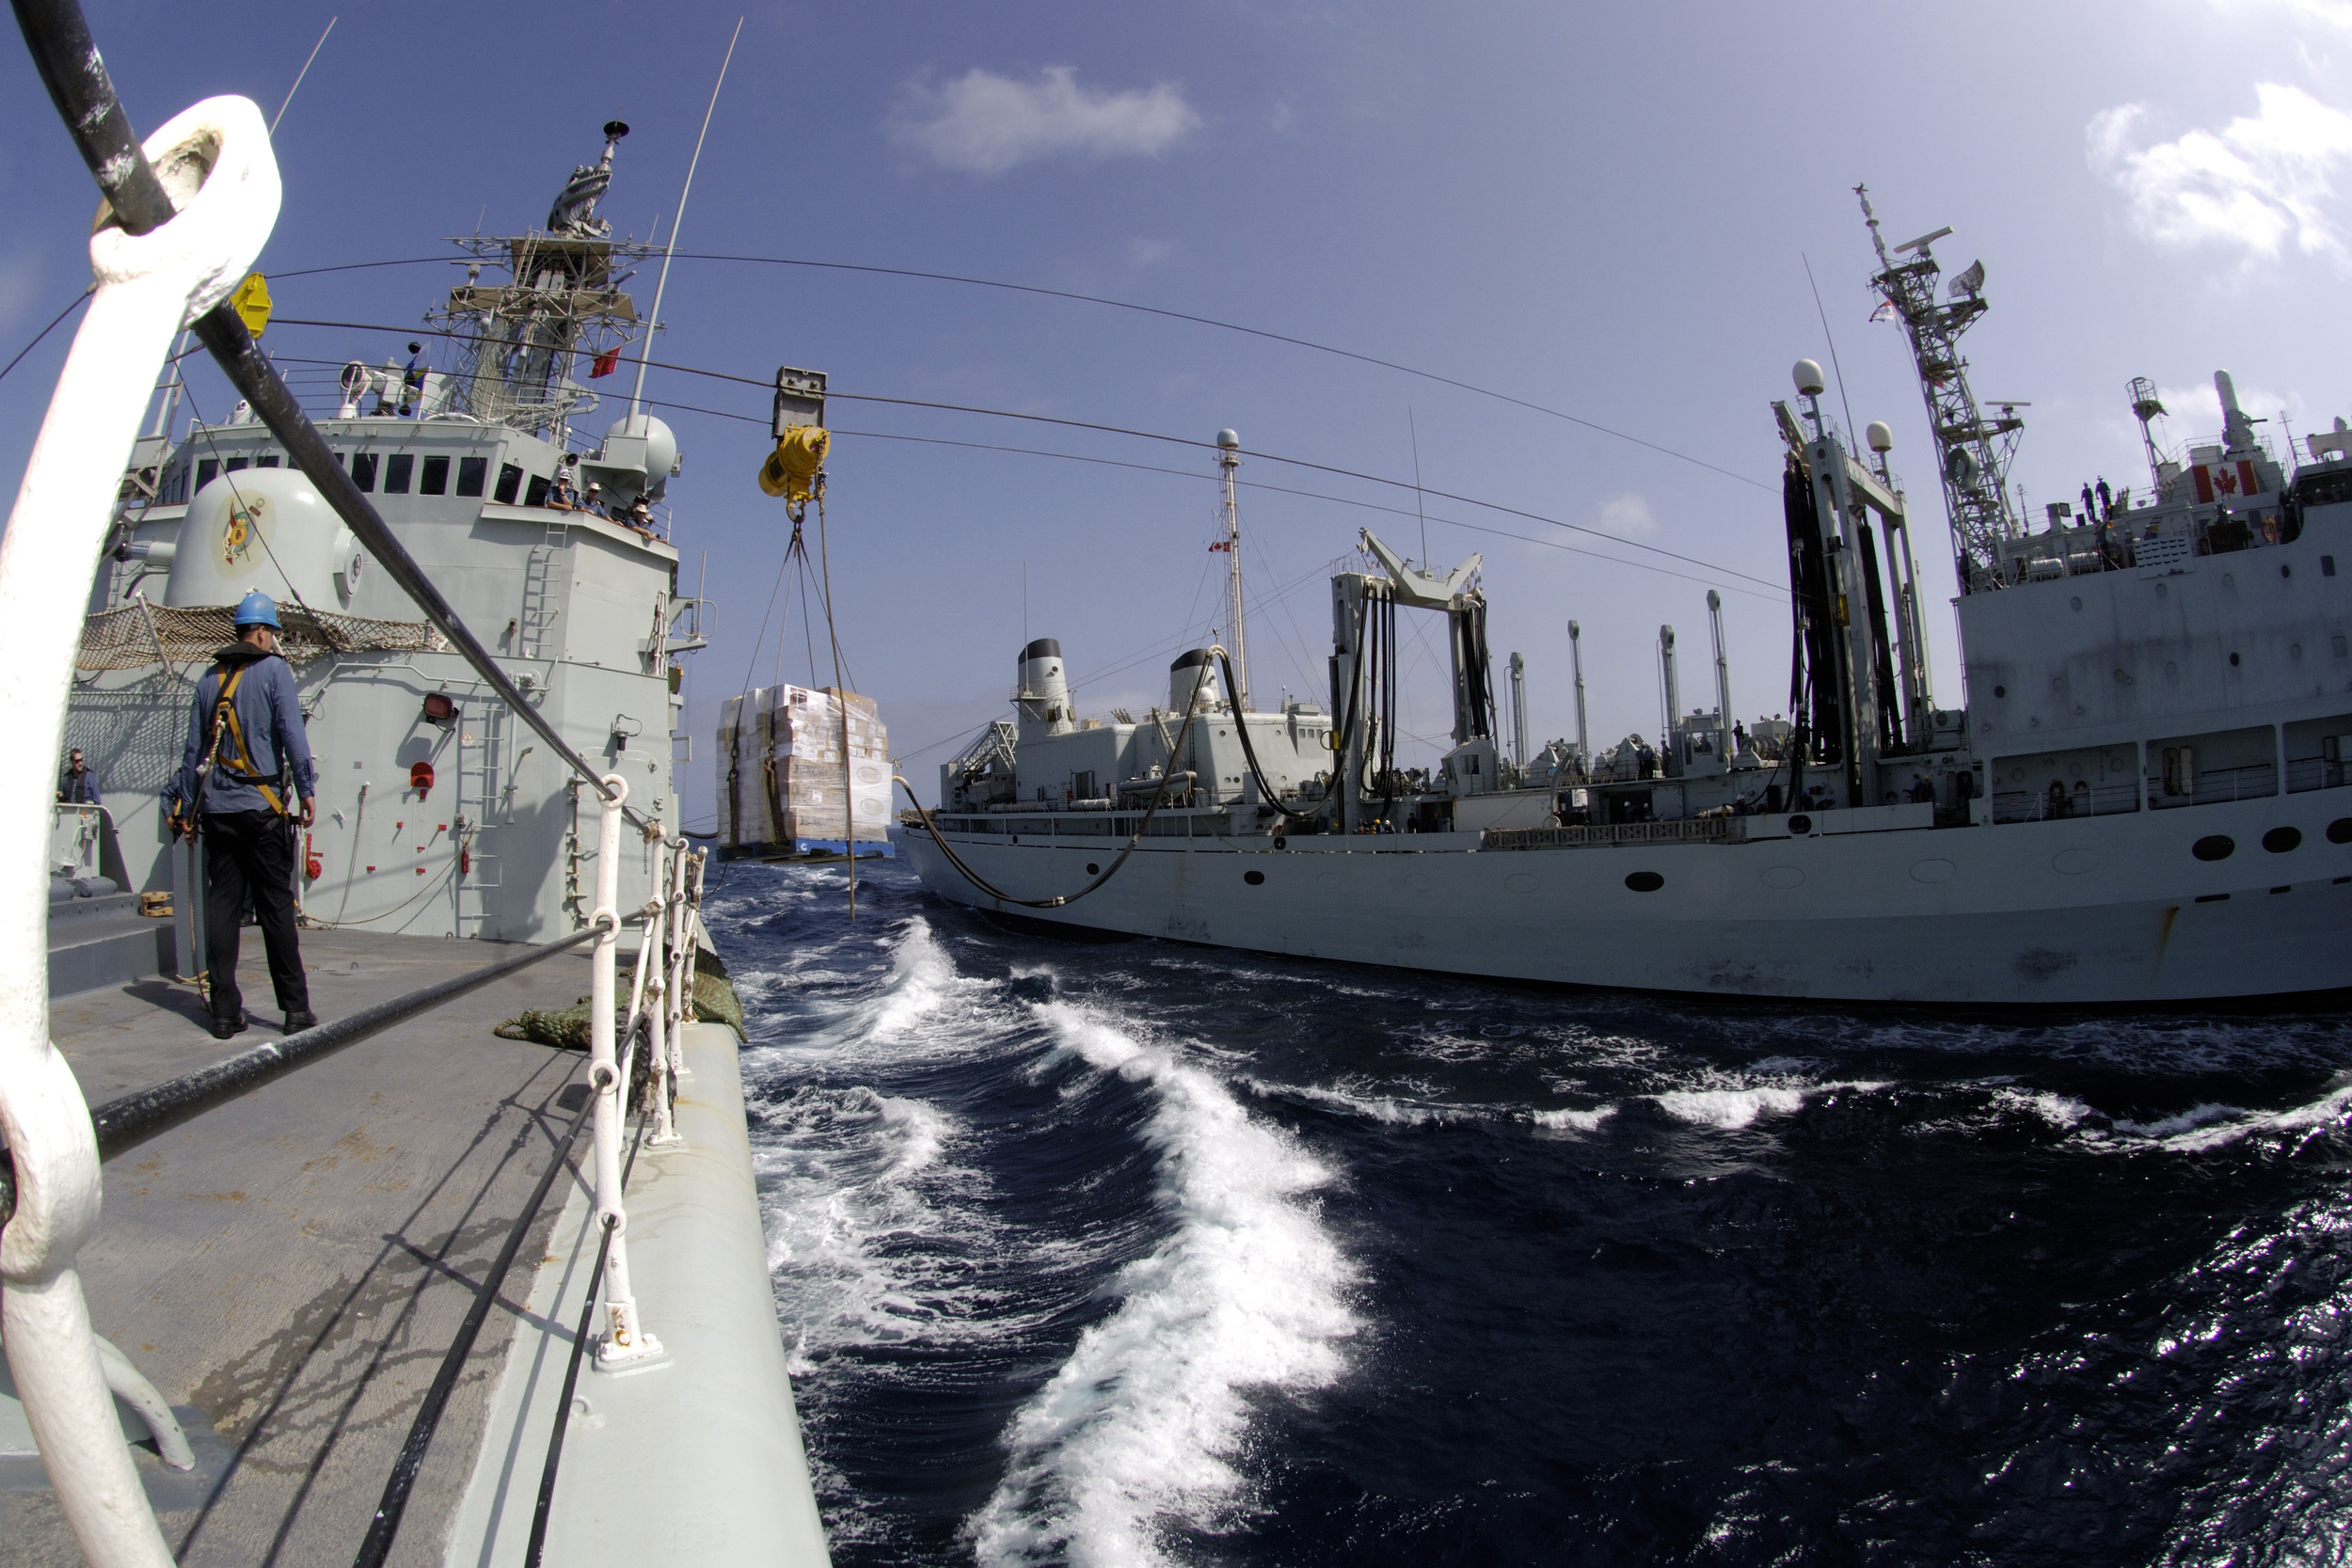 HMCS Protecteur transfers a pallet loaded with food to HMCS Iroquois during a Replenishment At Sea (RAS) in the Arabian Sea, September 2008. Since 2014, the Royal Canadian Navy has been without a resupply capability after Protecteur caught fire at sea and HMCS Preserver - the RCN's other supply ship - was taken offline due to cracks in the hull. (DND)